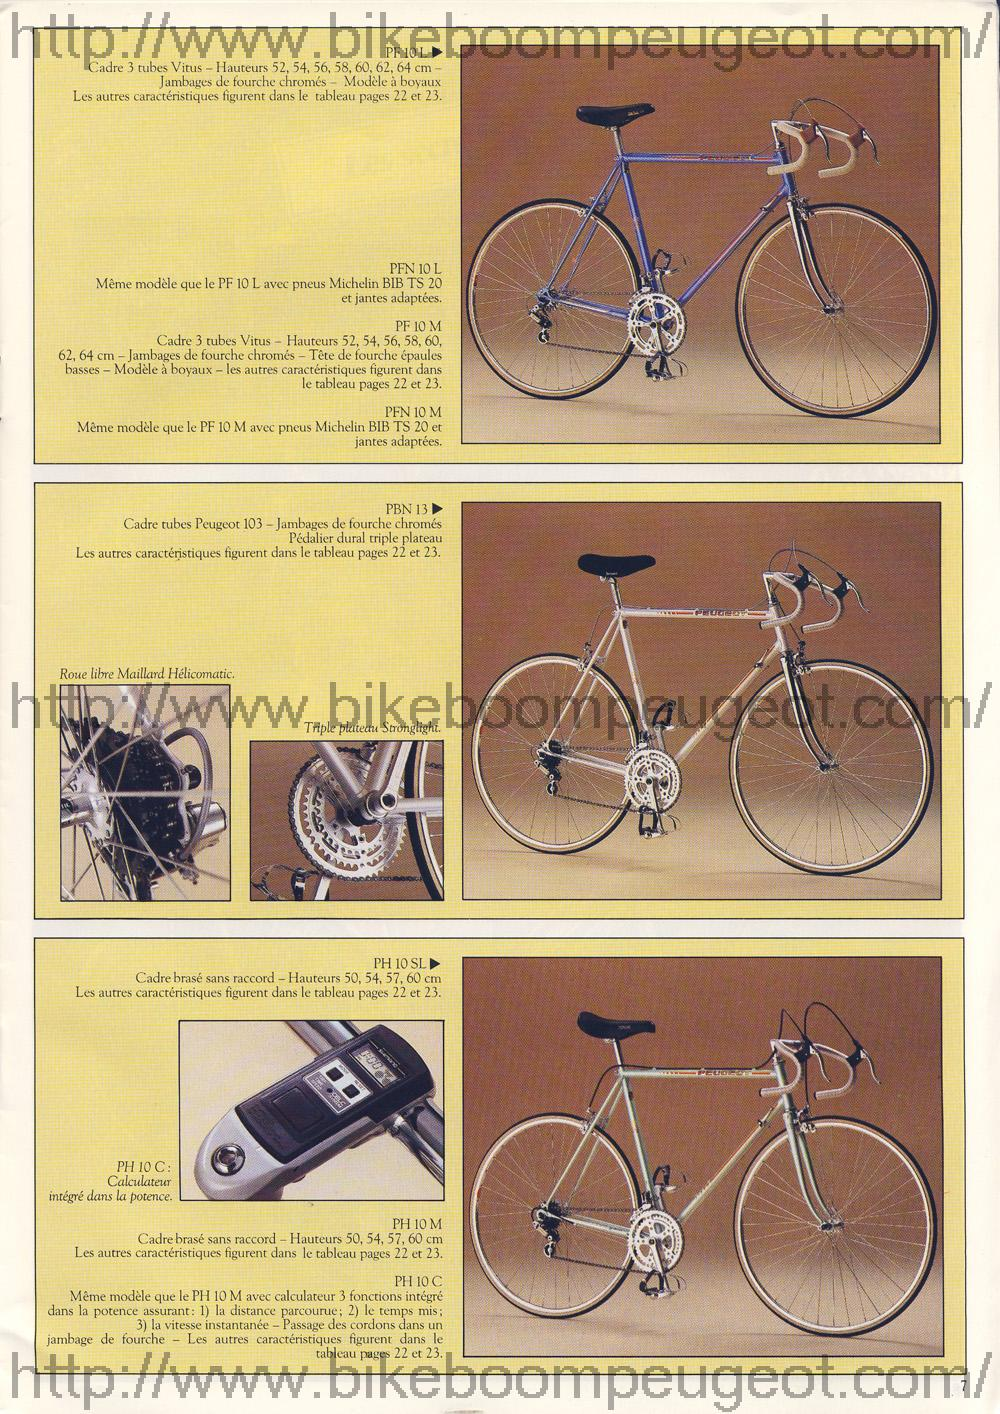 Peugeot PH10c 1983 Peugeot_1983_French_Brochure_Page7_BikeBoomPeugeot